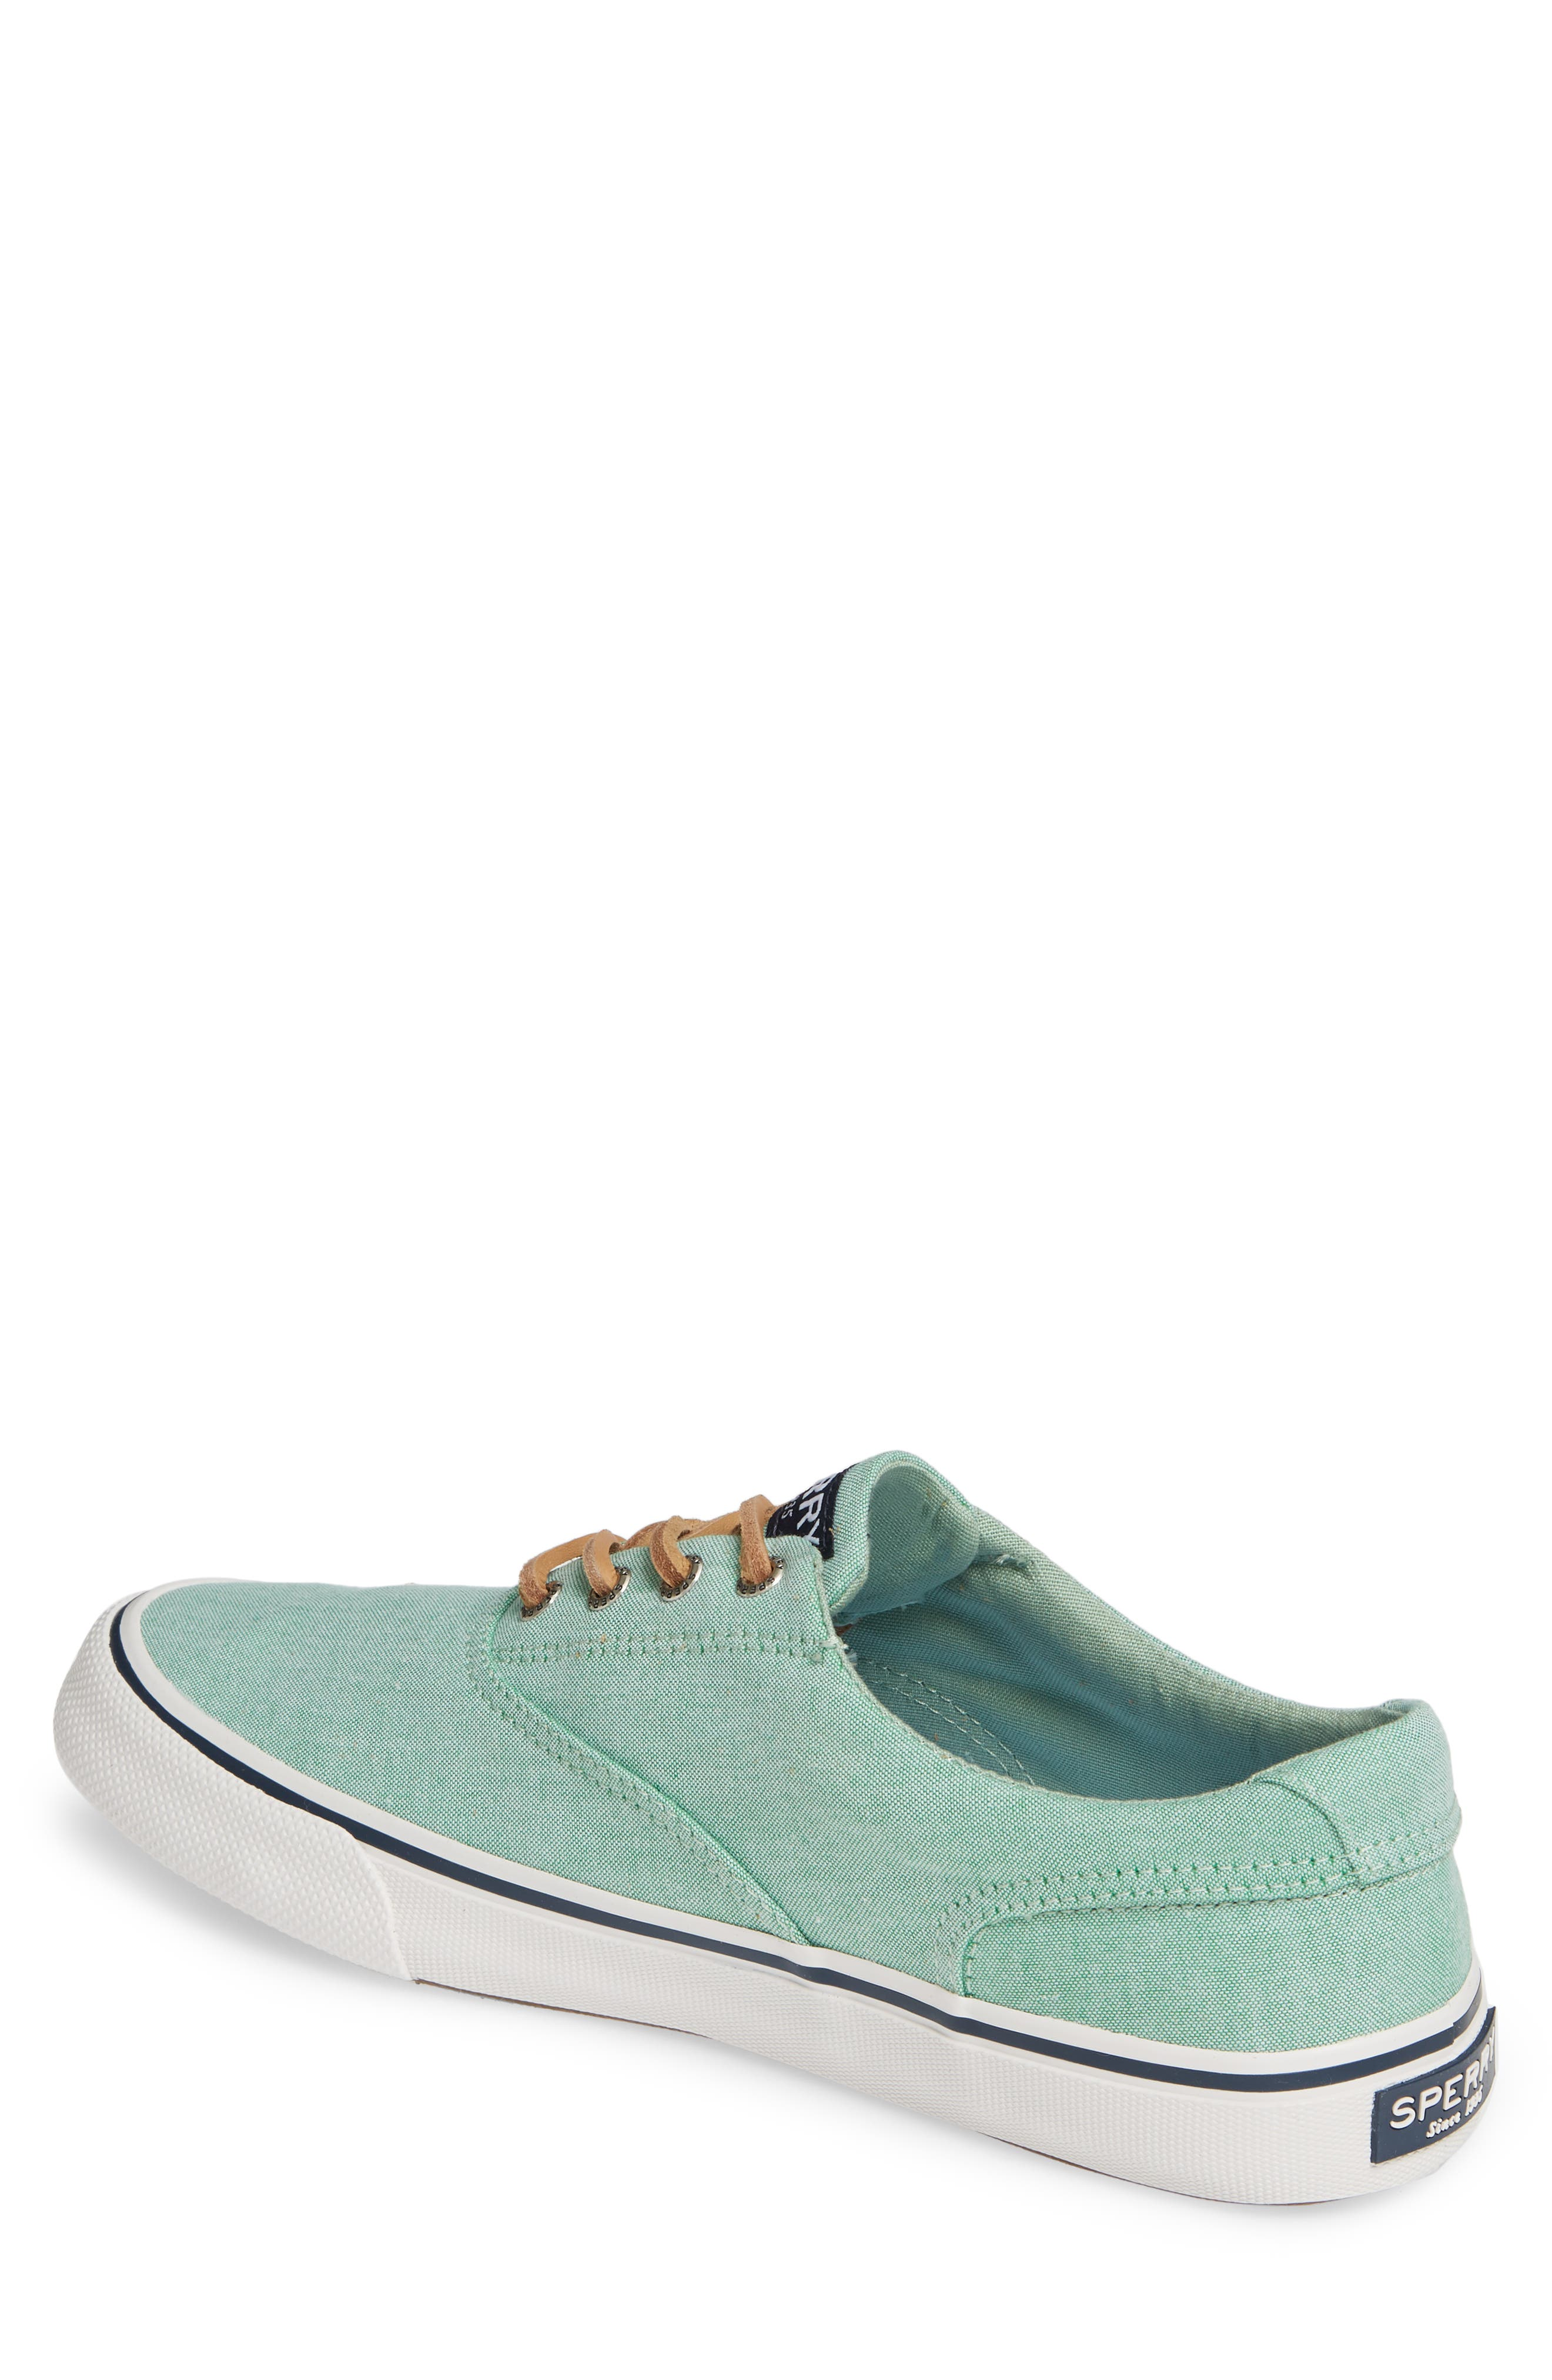 SPERRY, Striper II CVO Oxford Sneaker, Alternate thumbnail 2, color, GREEN